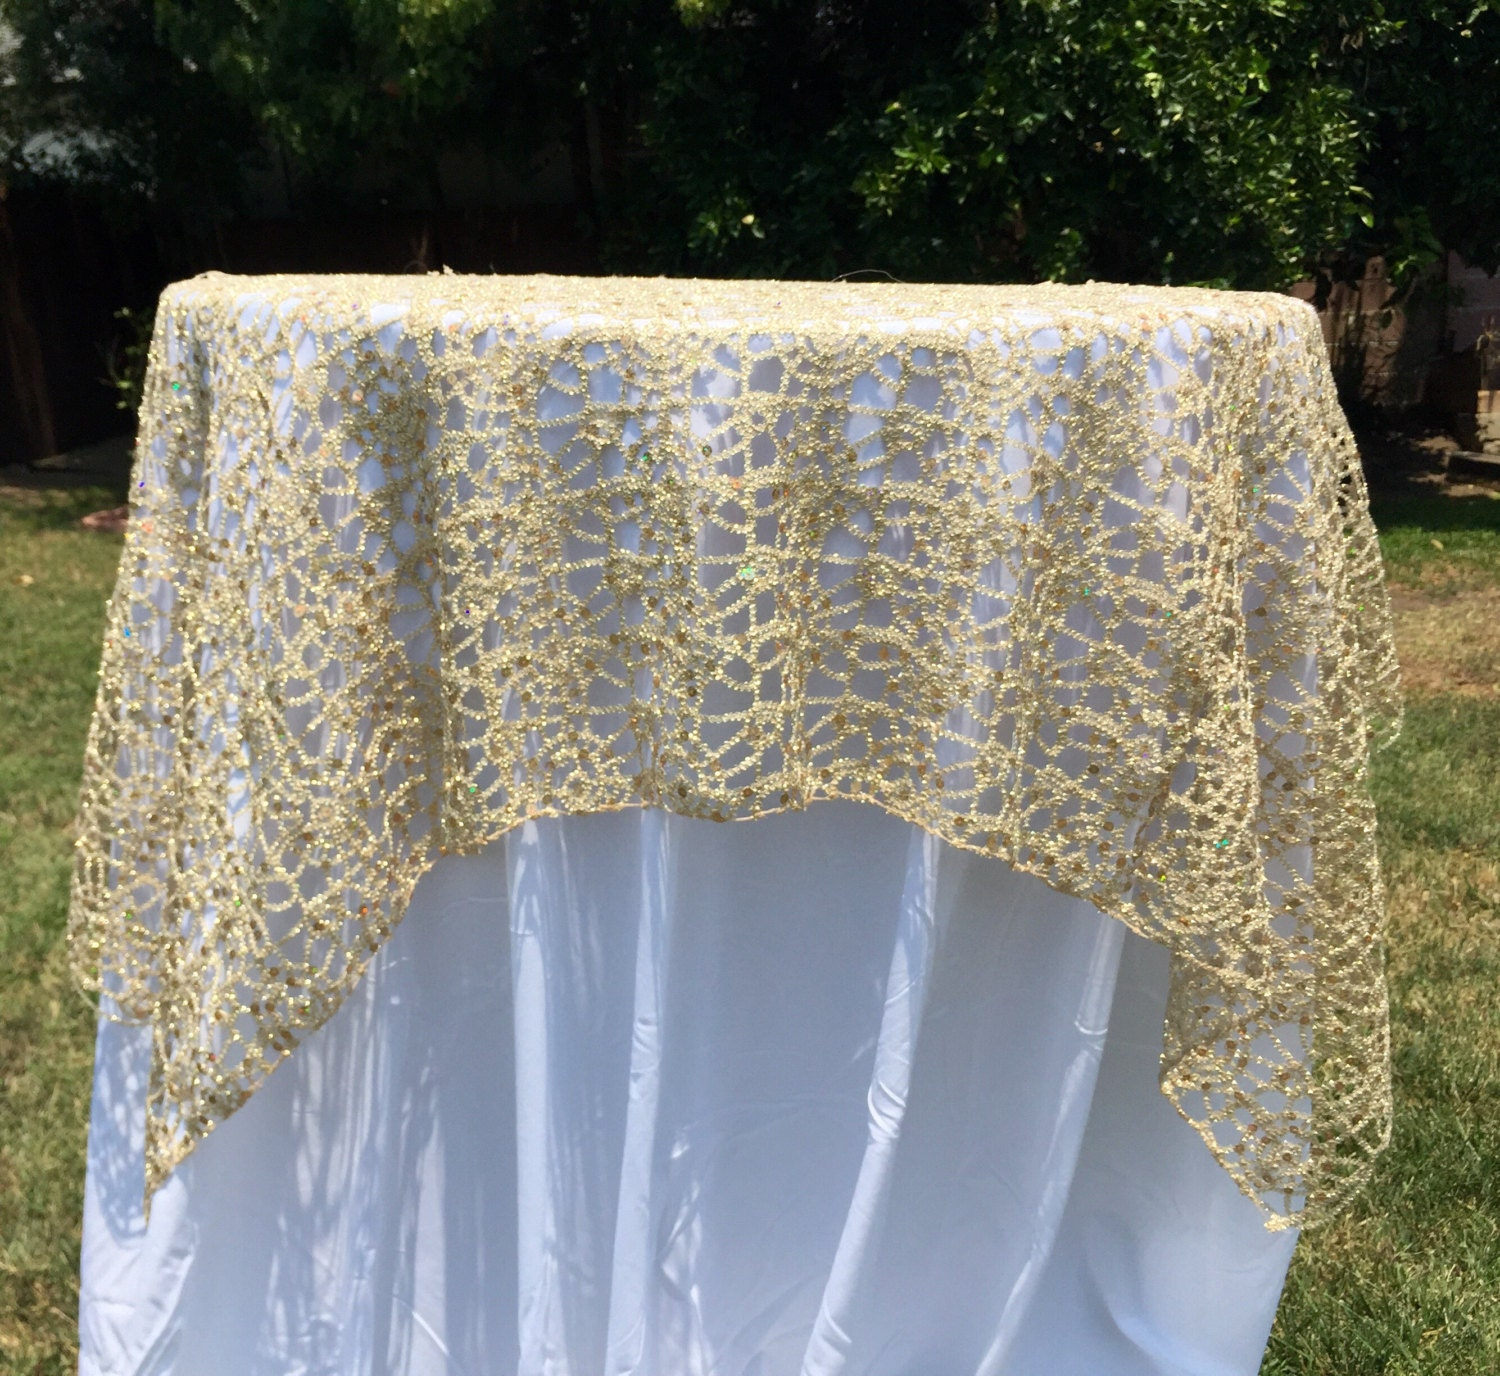 gold lace tablecloth silver sequence chain lace table overlay lace tablecloth wedding decor table runner table cloth lace sequin